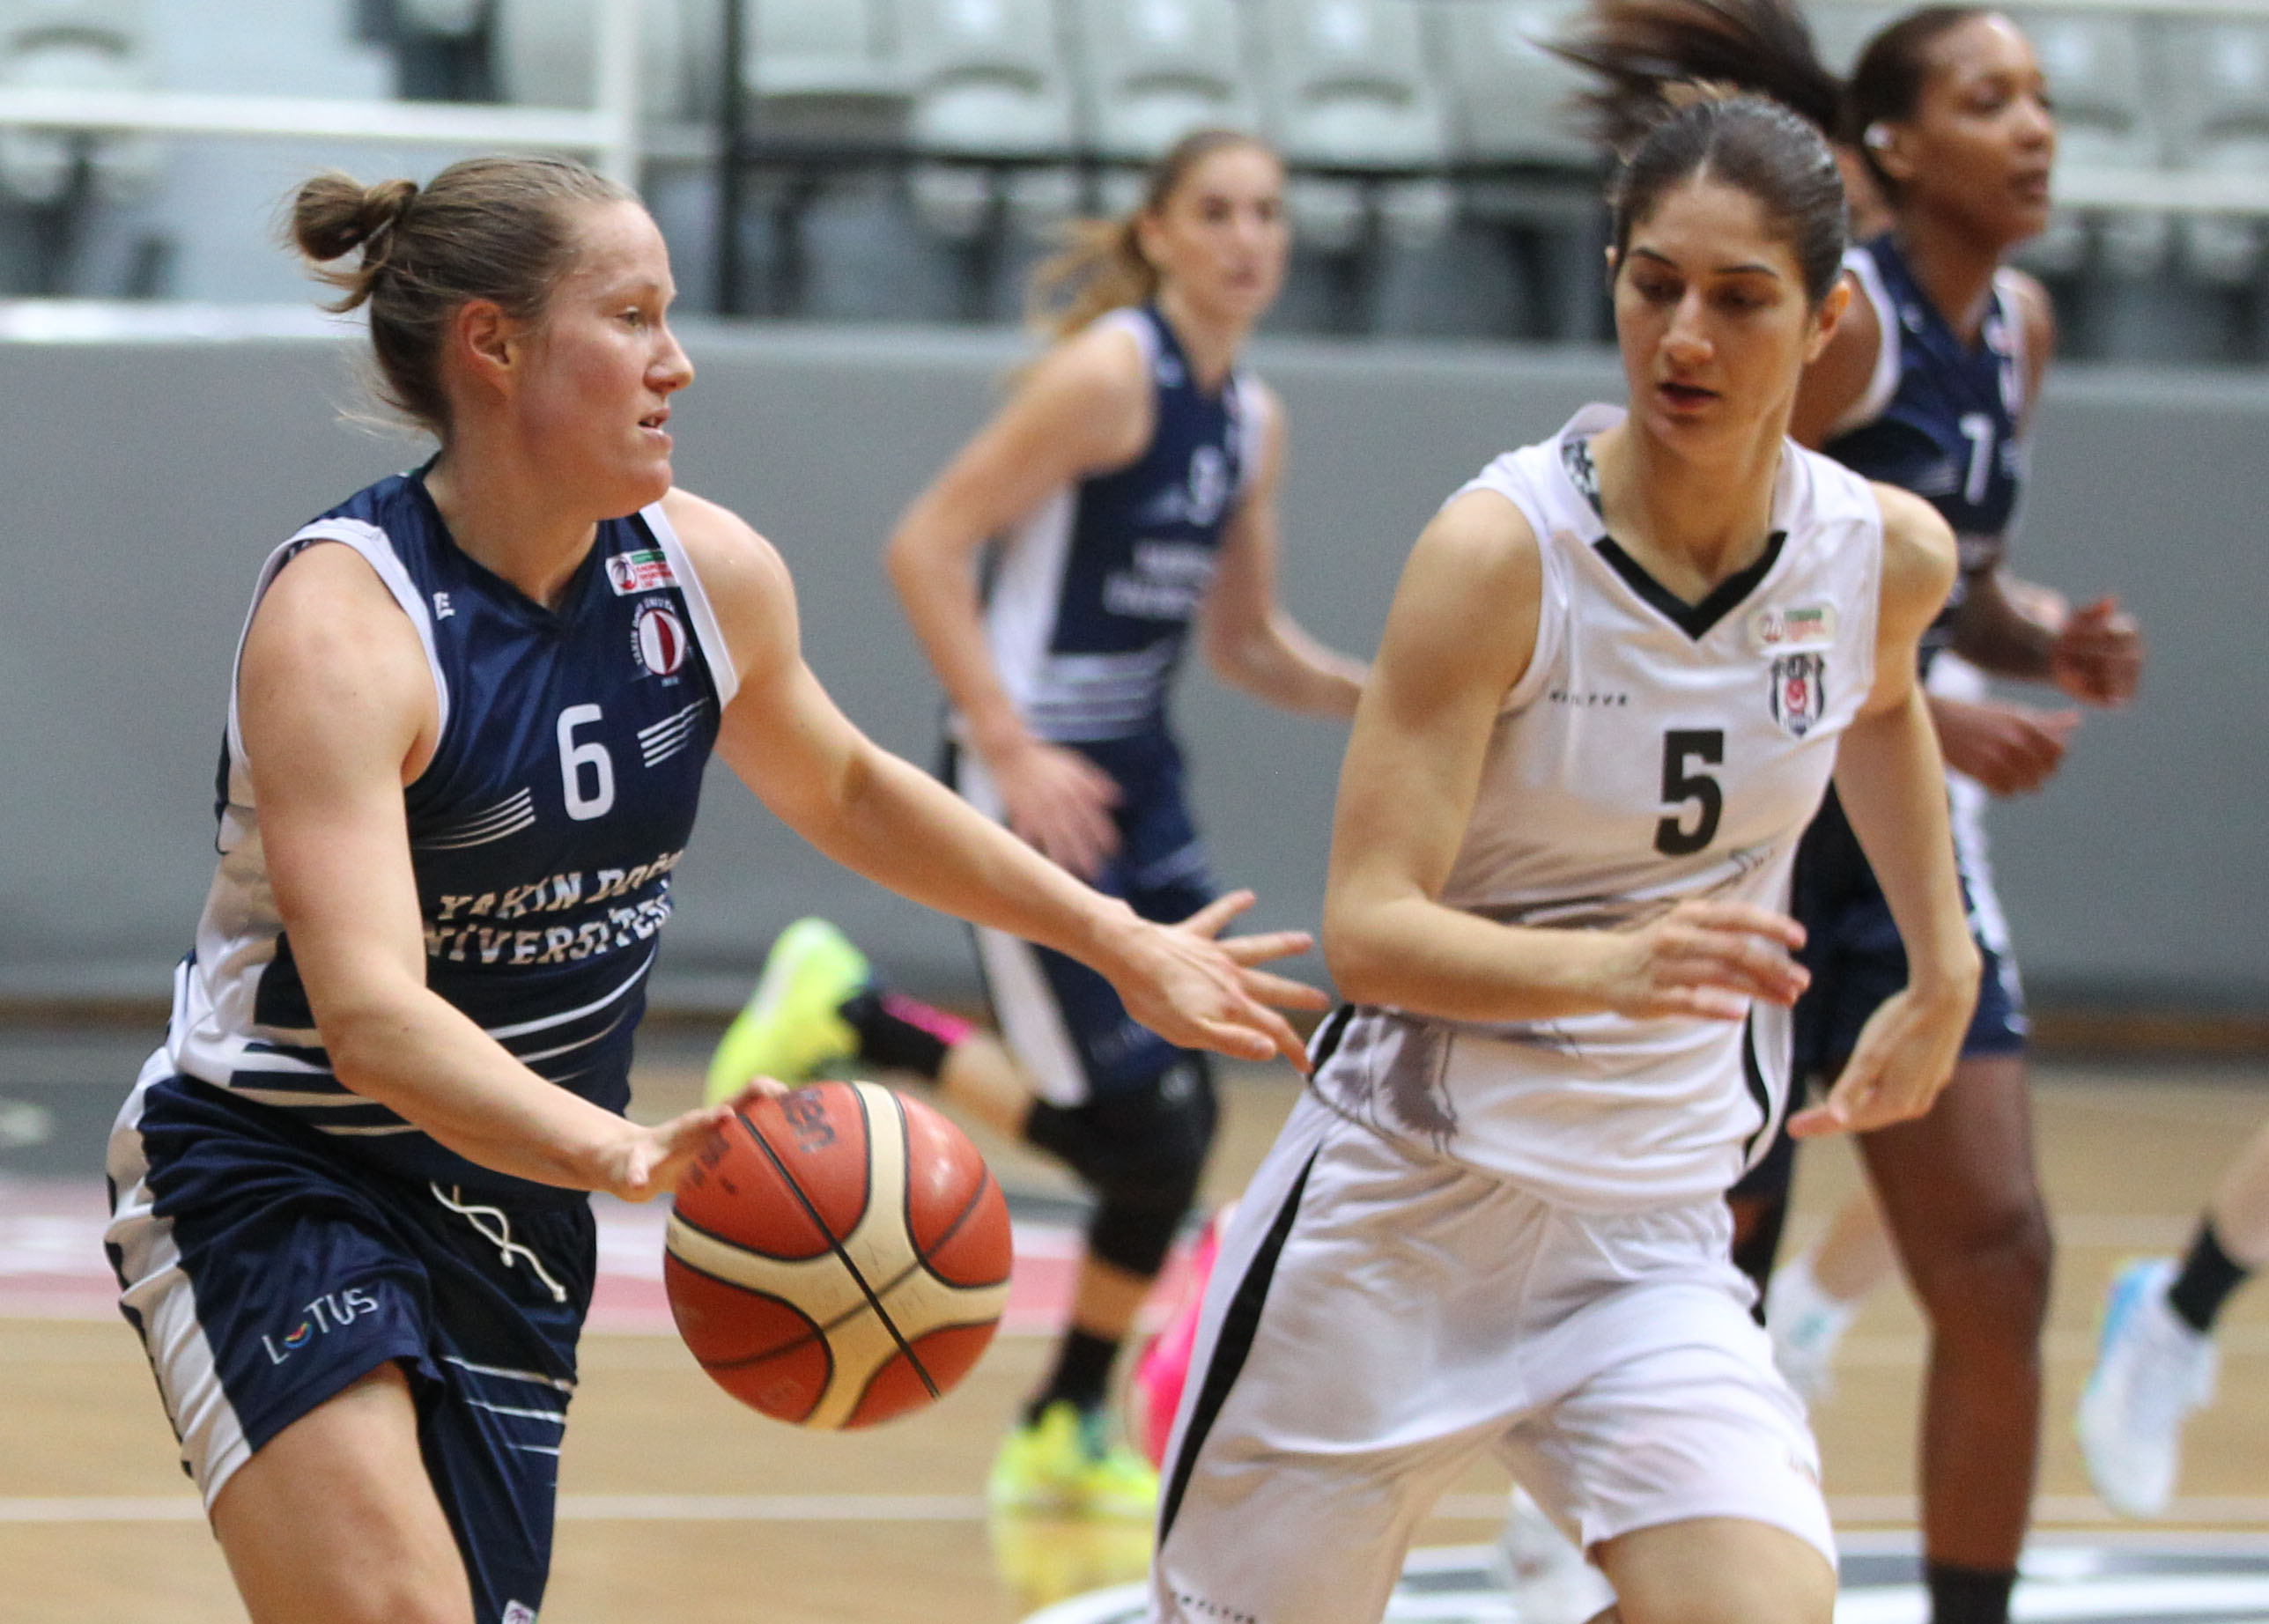 Near East University made a four-game winning streak… Beşiktaş: 67 – Near East University: 73